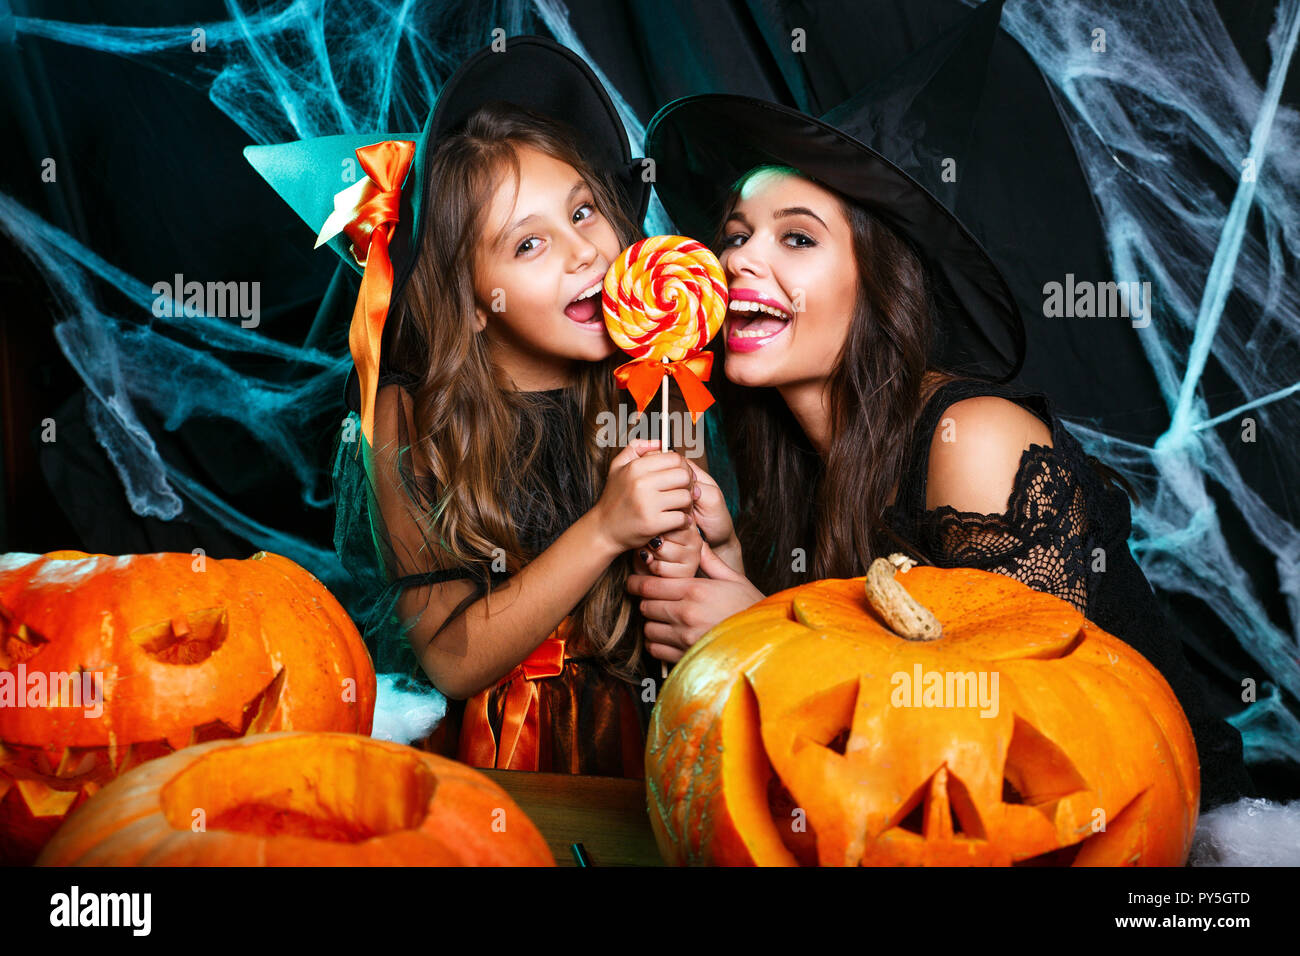 Halloween Concept - beautiful caucasian mother and her daughter in witch costumes celebrating Halloween with Halloween candy and sweet over spider web Stock Photo